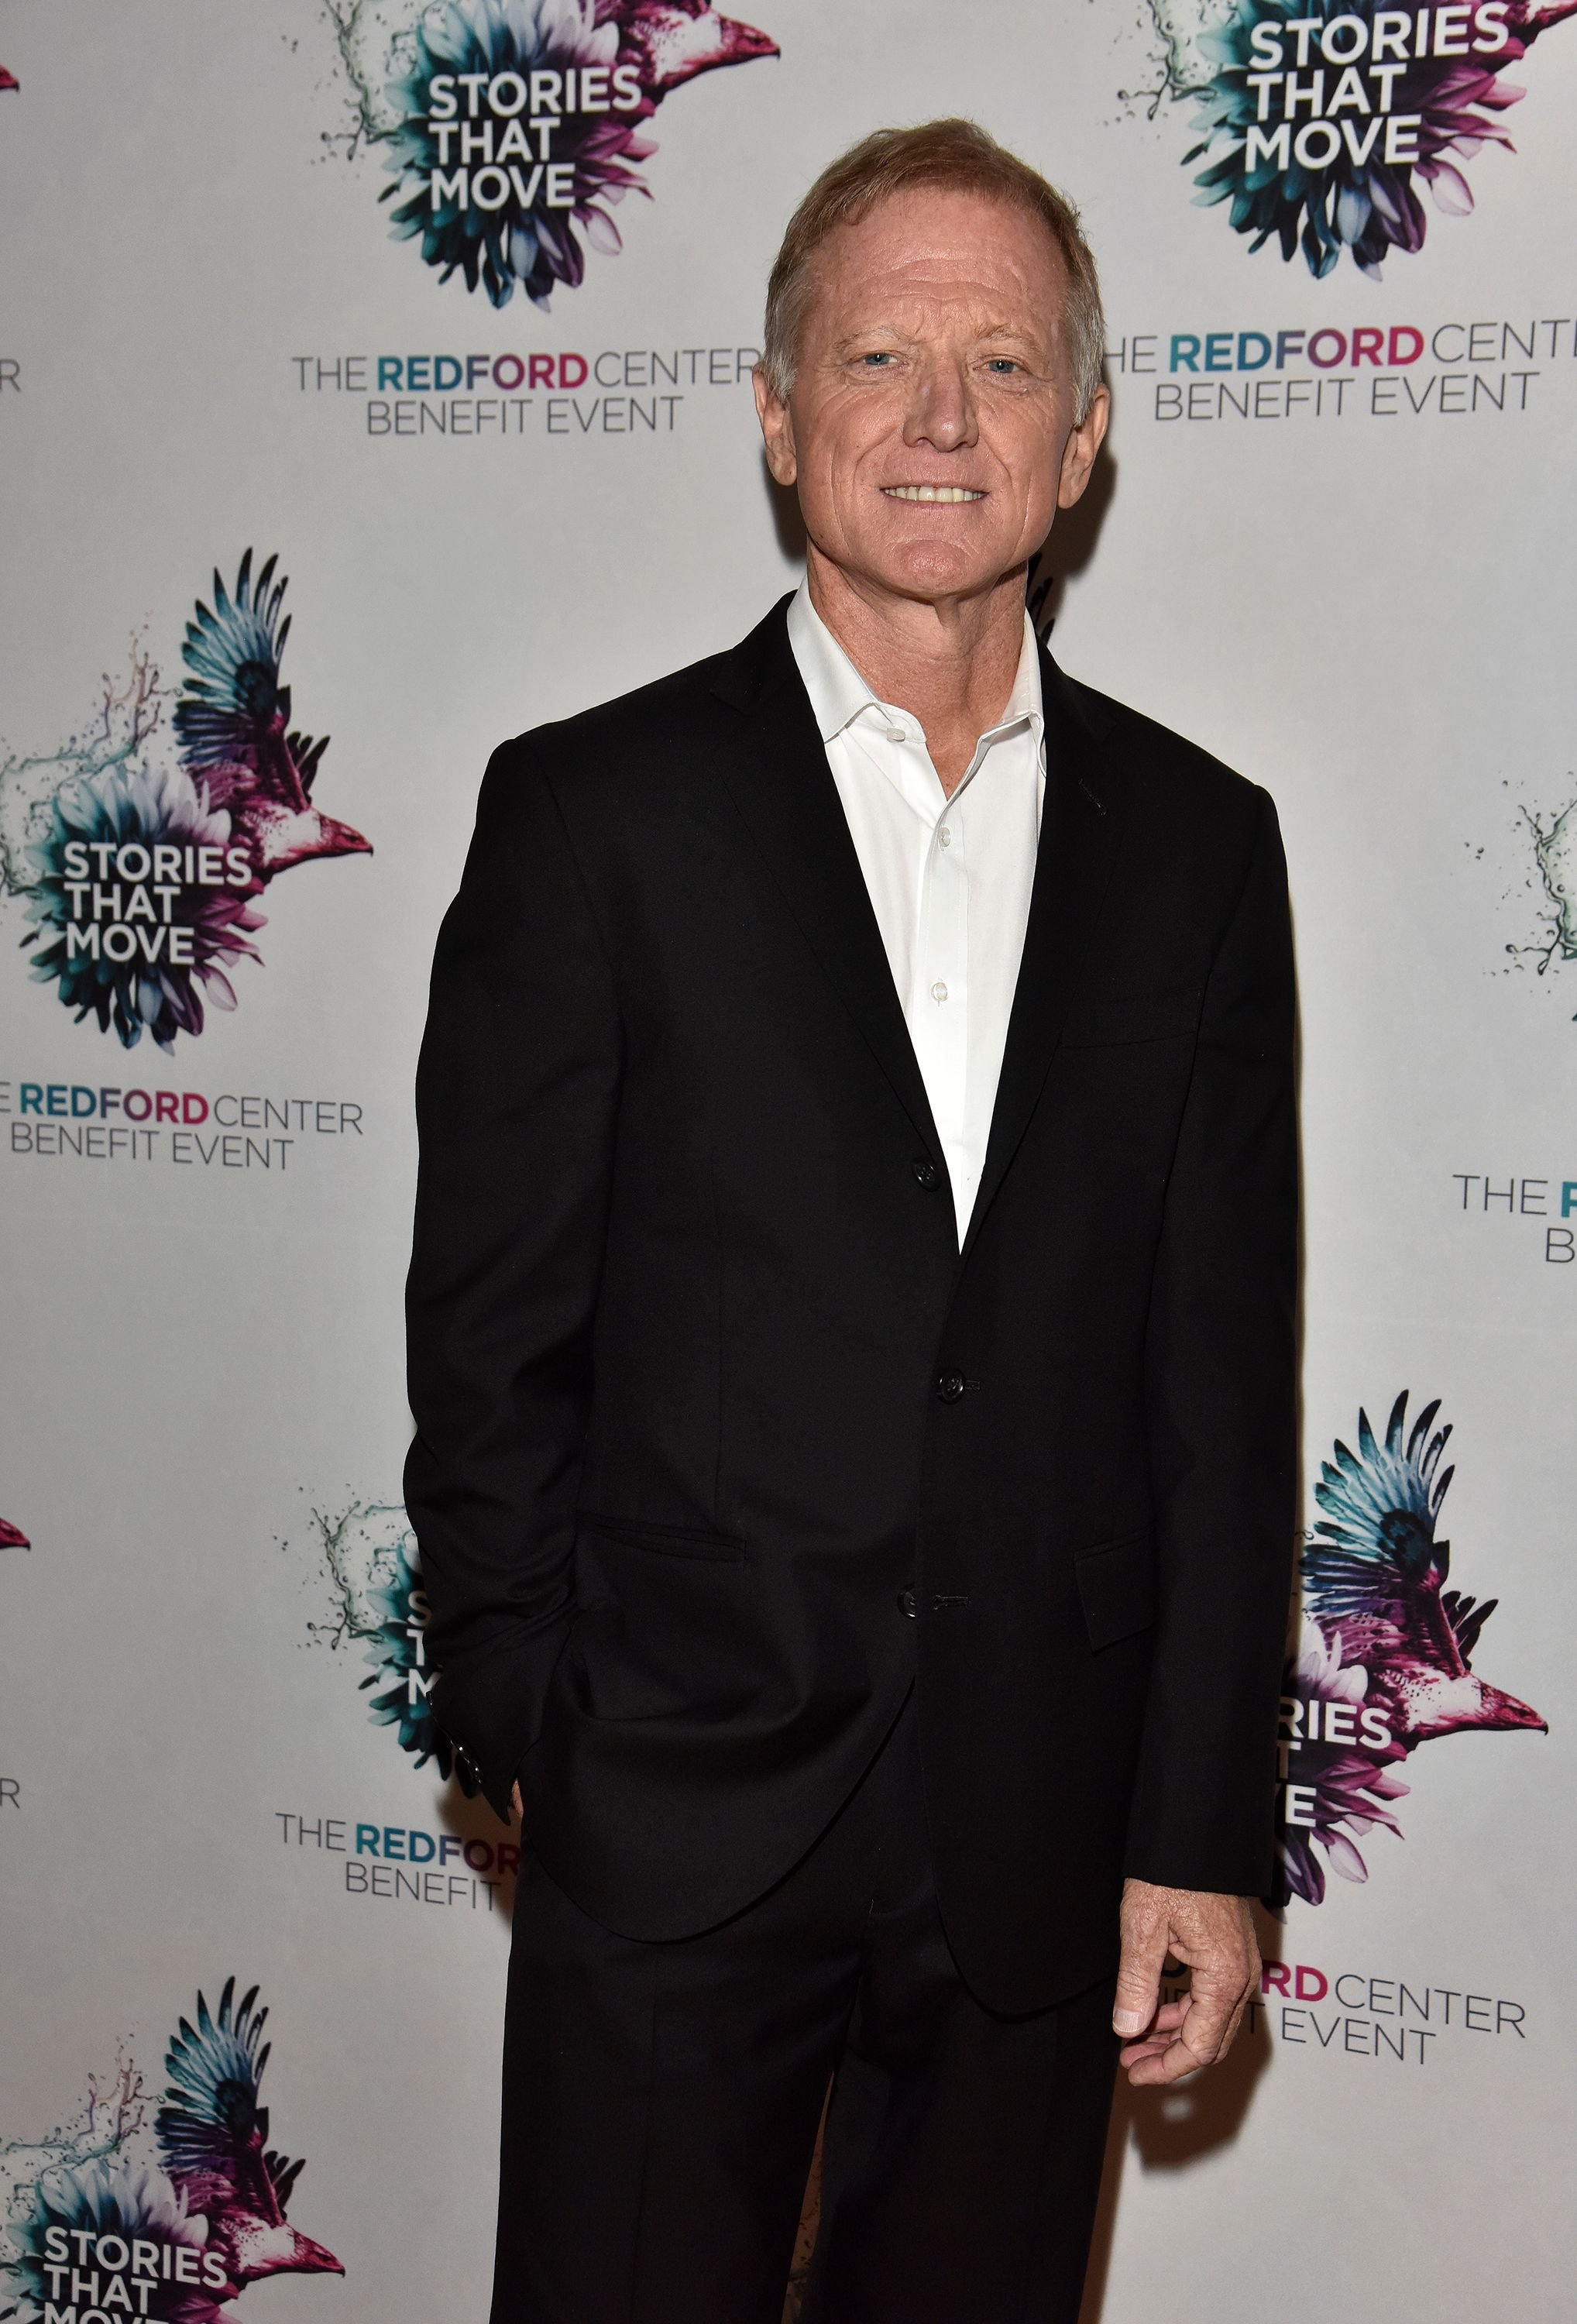 James Redford at The Redford Center's Benefit at August Hall on December 6, 2018, in San Francisco, California | Photo: Tim Mosenfelder/Getty Images